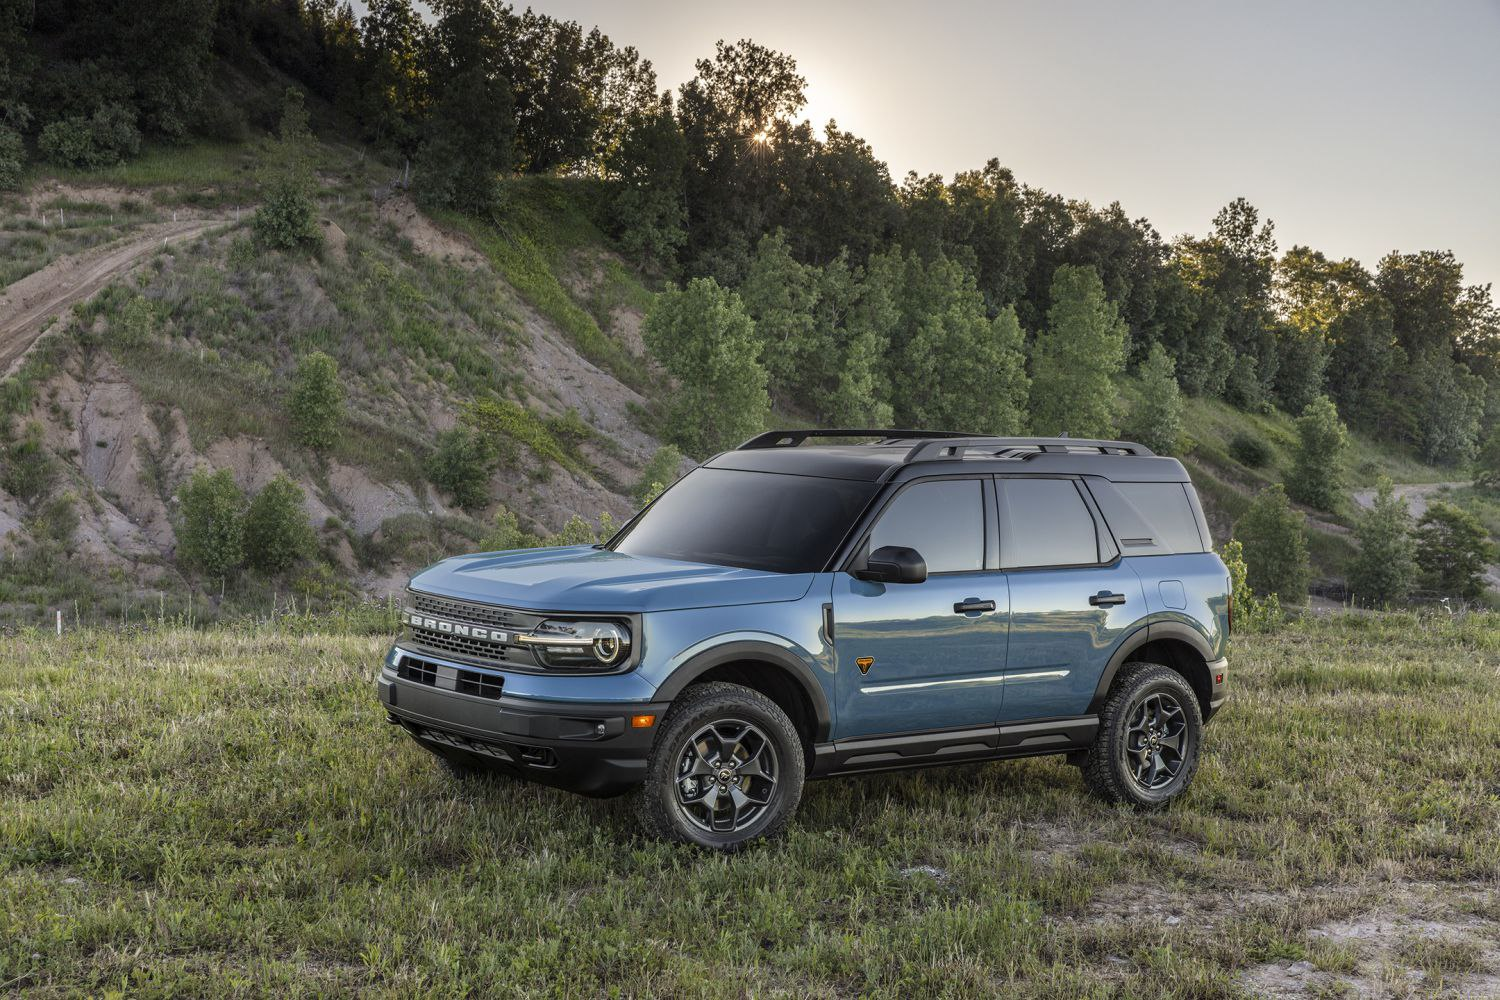 2020 Ford Bronco Sport 1 5 Ecoboost 181 Hp 4x4 Automatic Technical Specs Data Fuel Consumption Dimensions